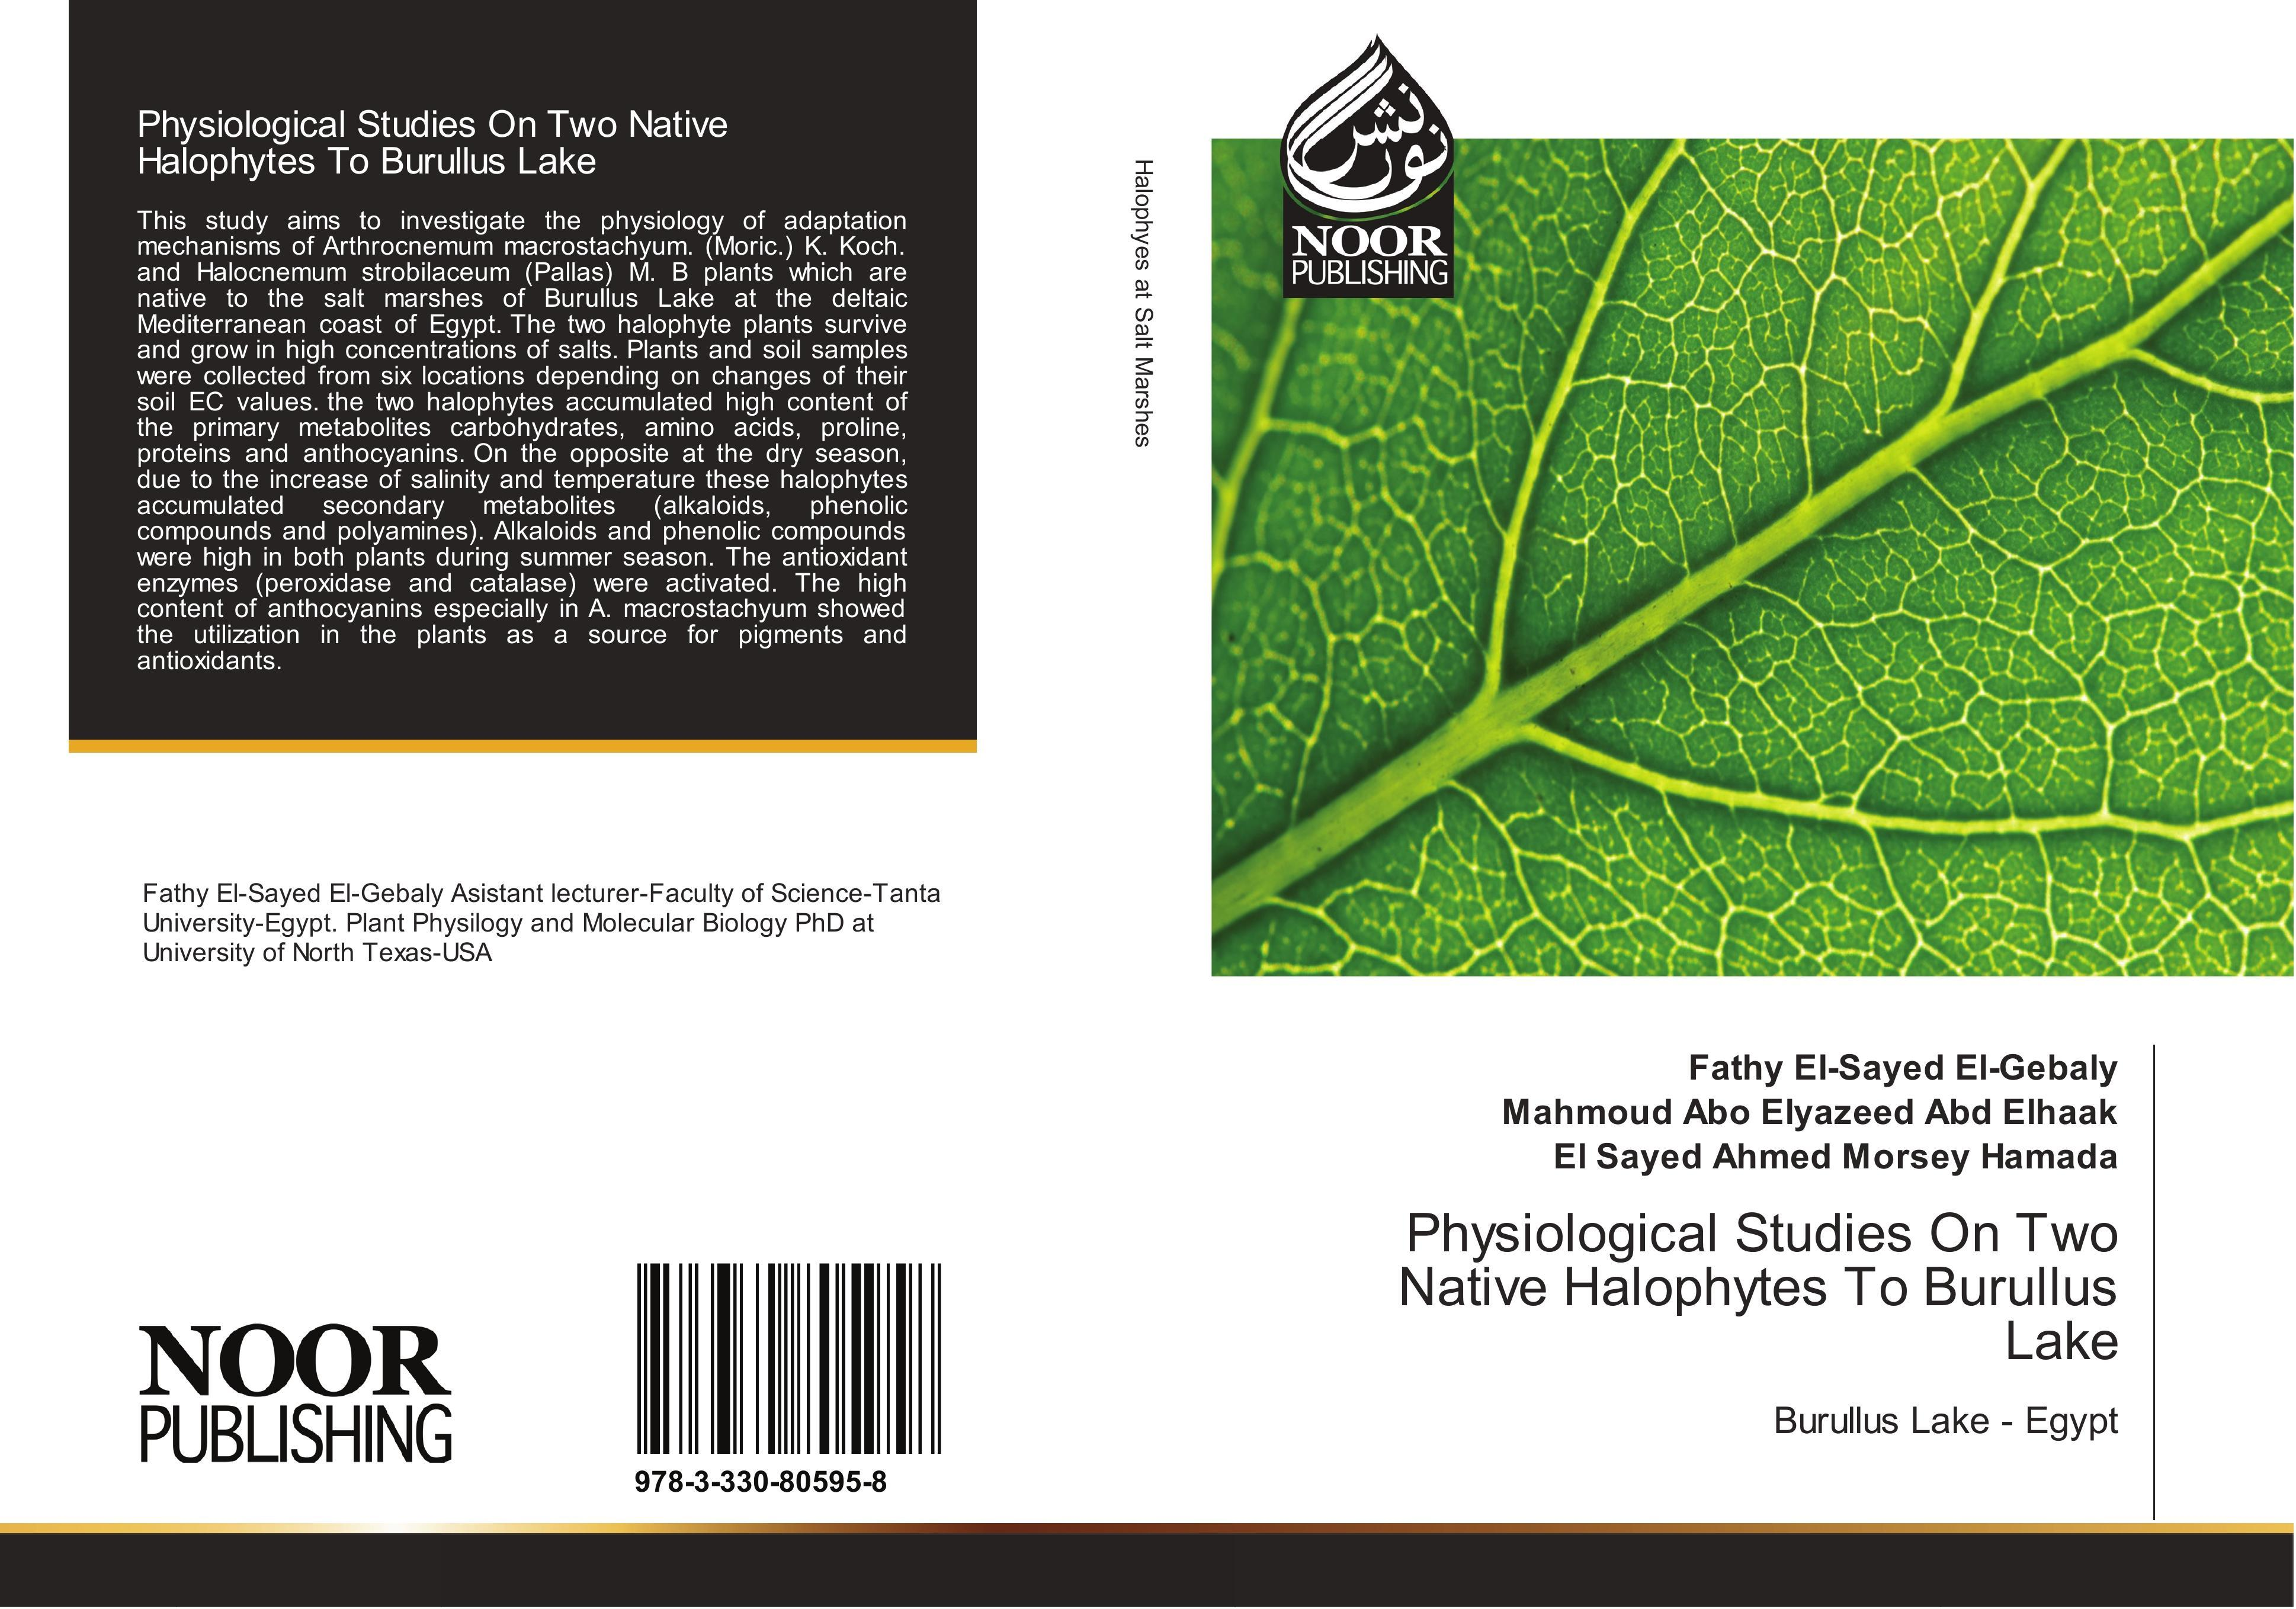 Physiological Studies On Two Native Halophytes To Burullus L ... 9783330805958